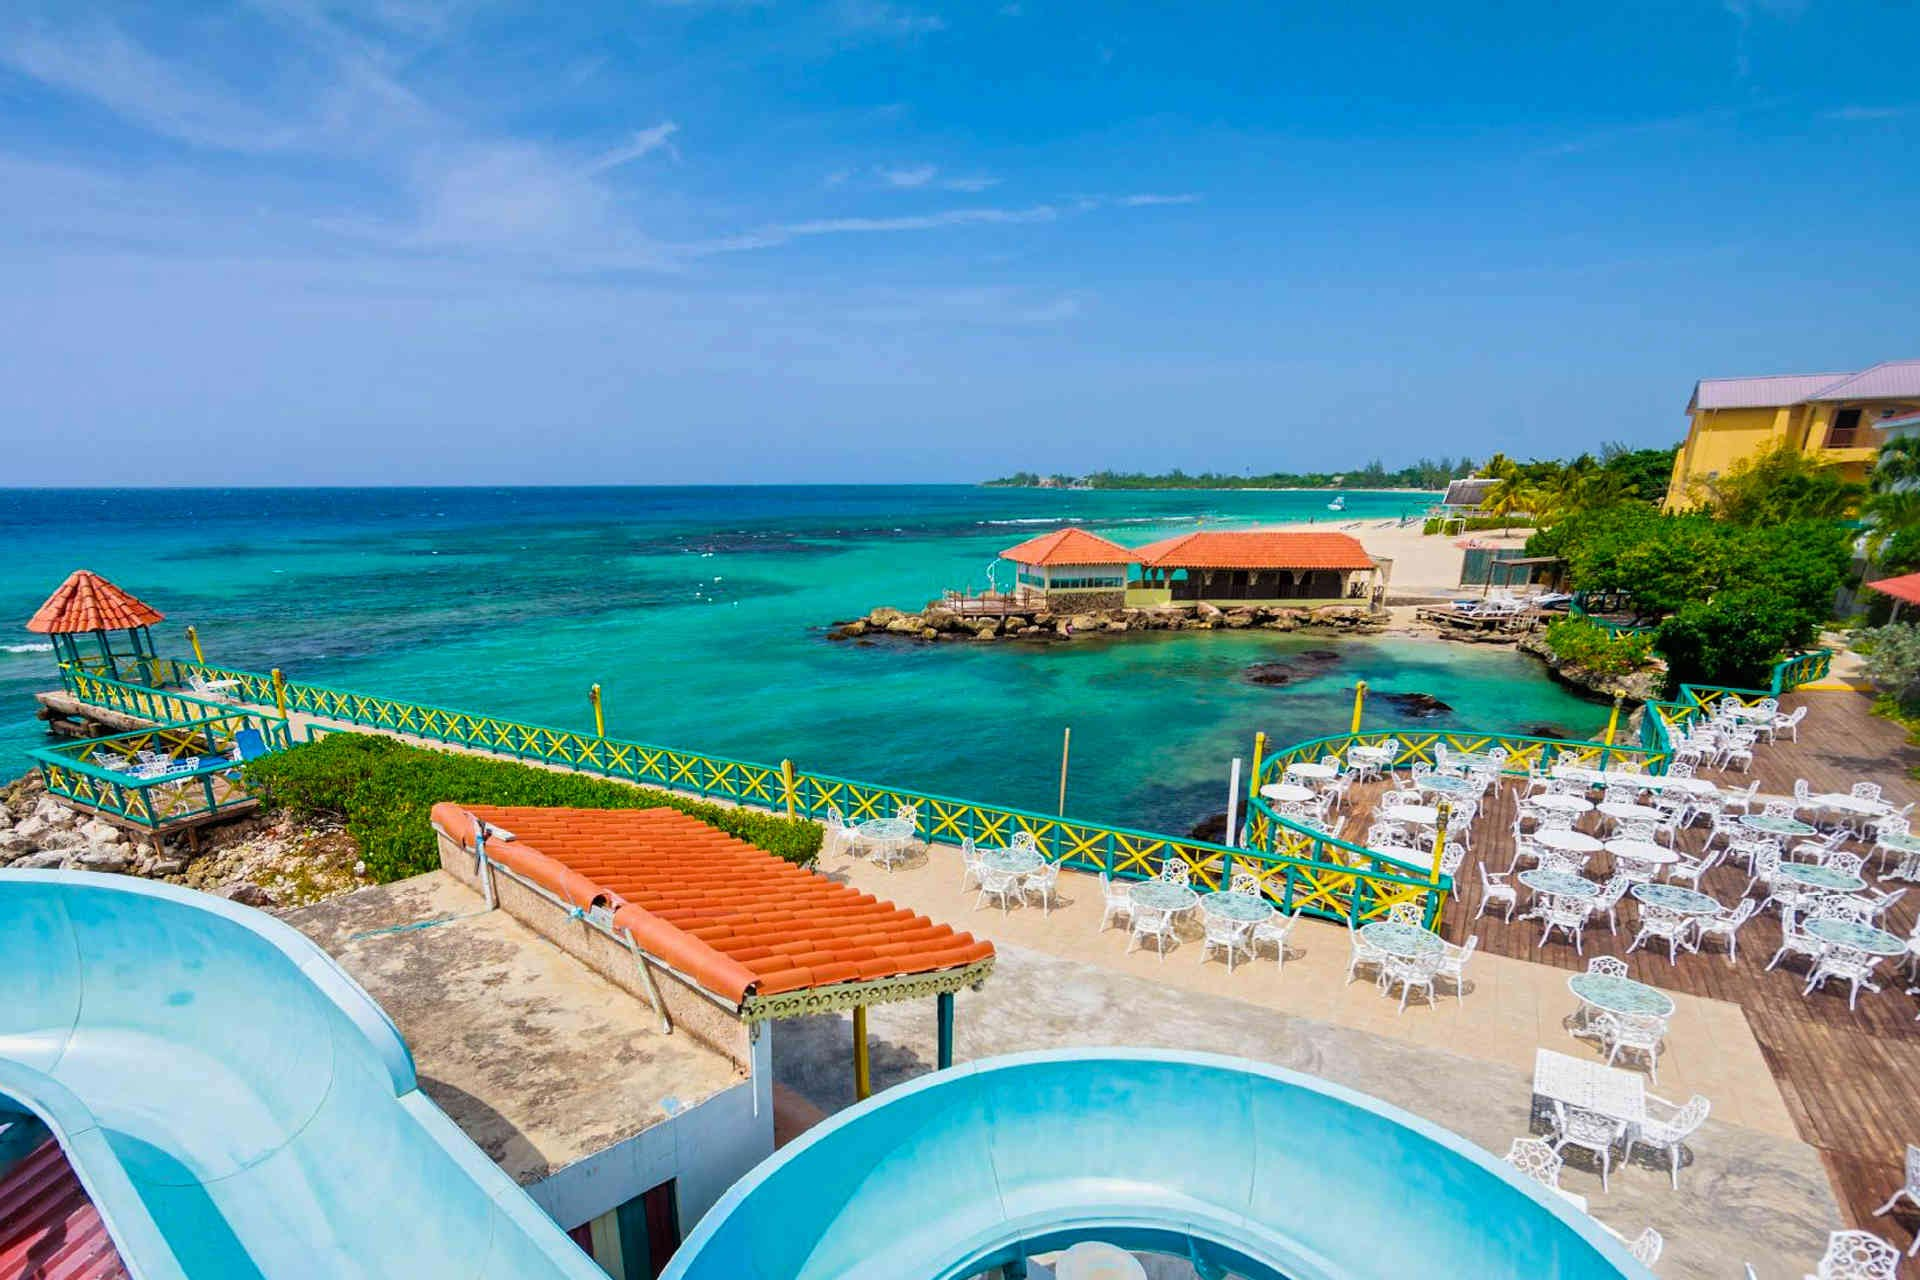 Franklyn D. Resort & Spa in Jamaica; Courtesy of Franklyn D. Resort & Spa